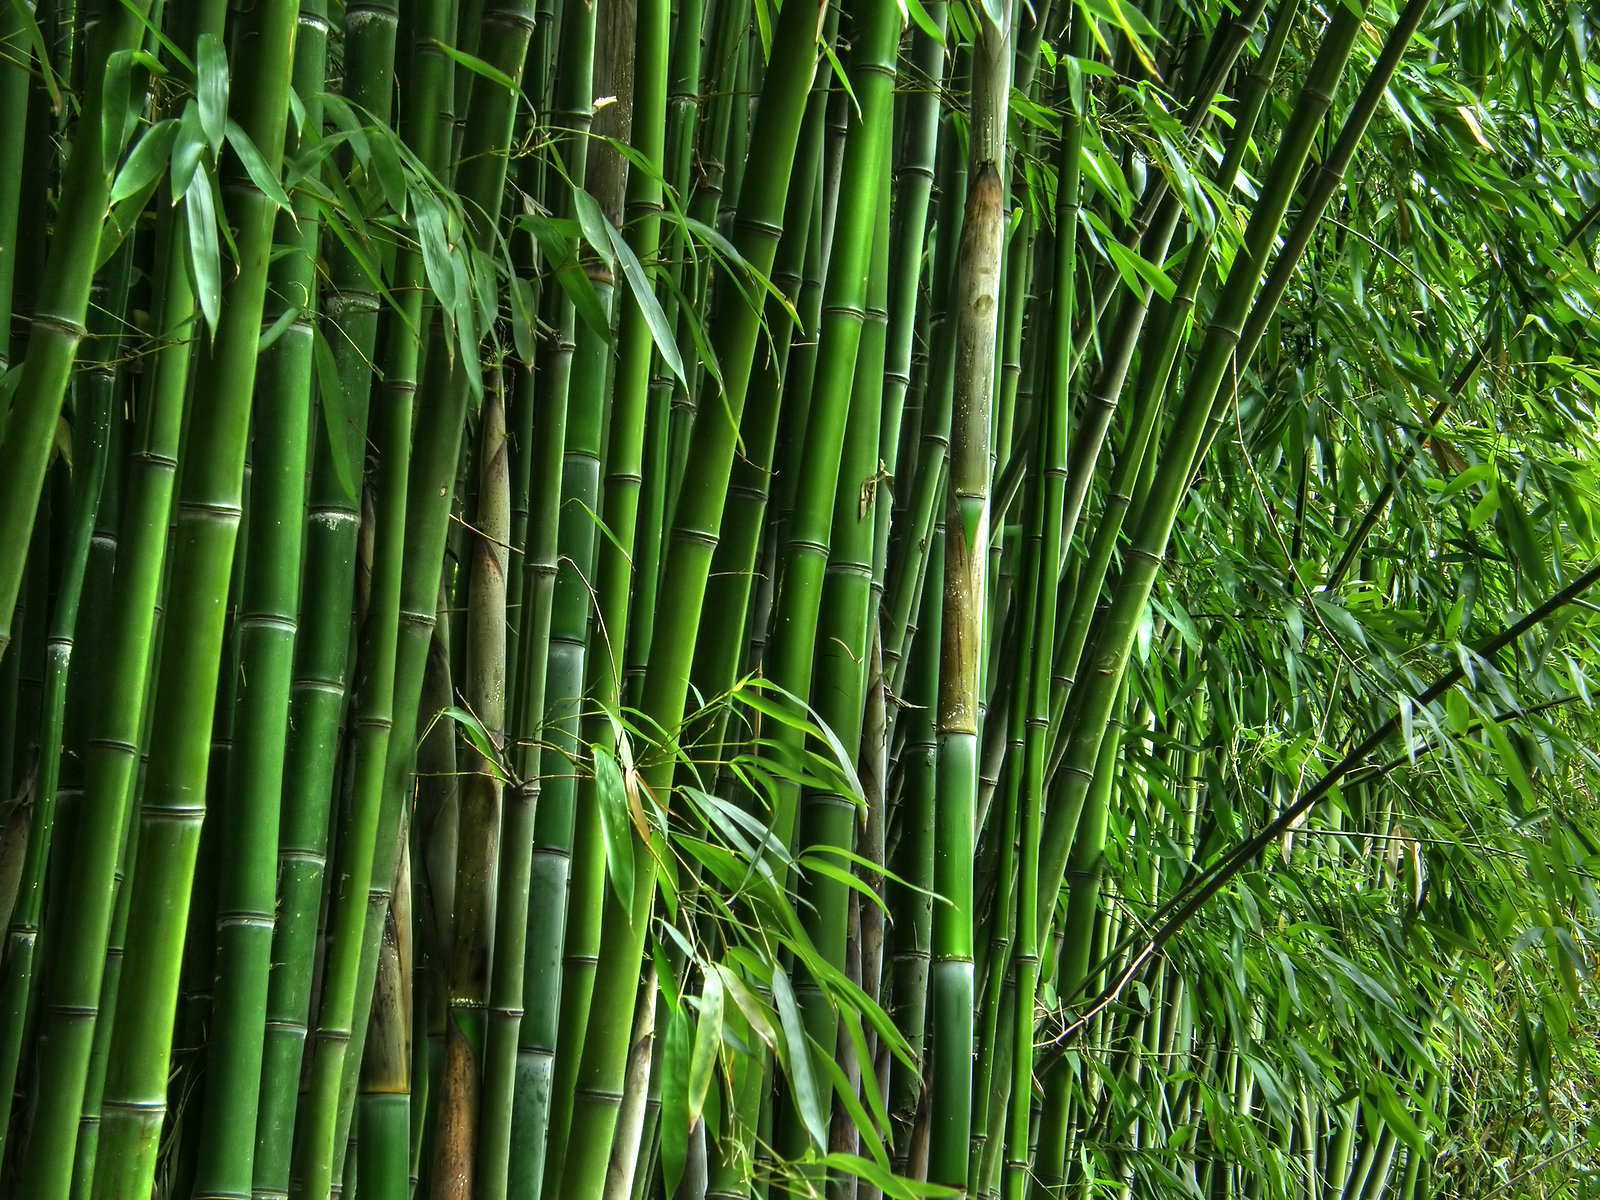 Bamboo Species in Kerala